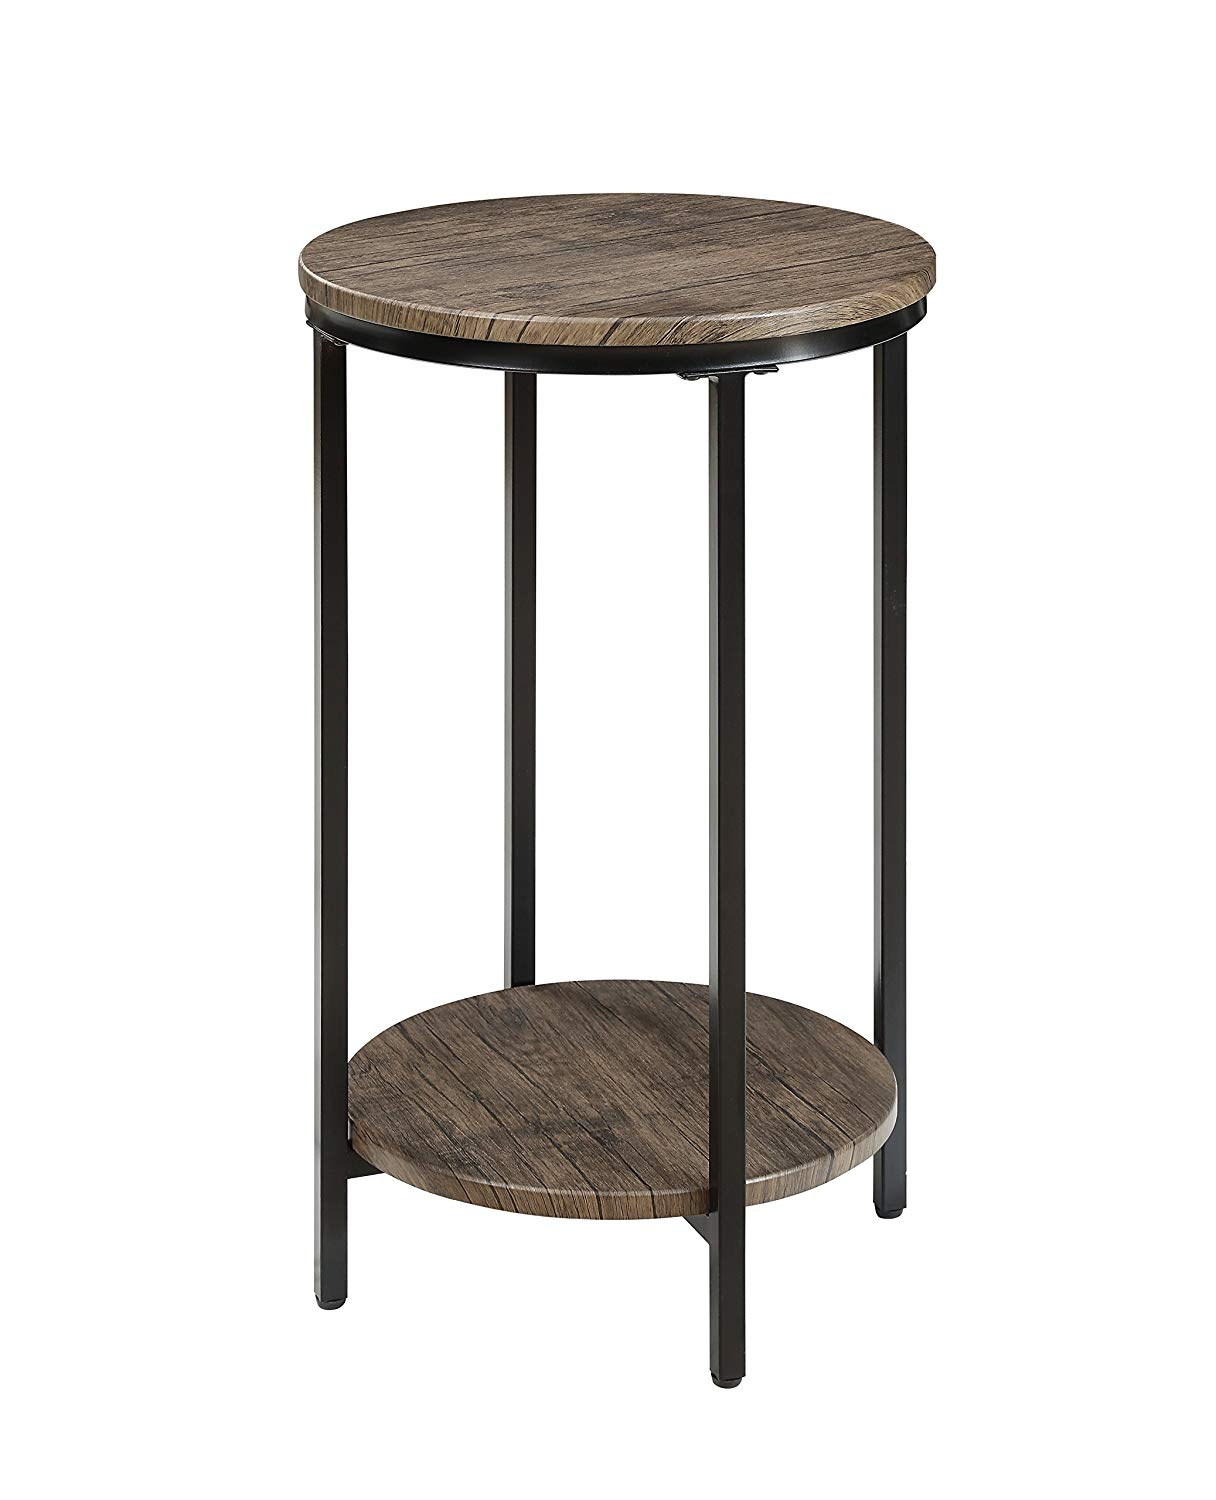 ton lane antique wood finish two tiered round end room essentials hairpin accent table walnut side with storage shelf for living distressed pecan kitchen foldable wicker brown